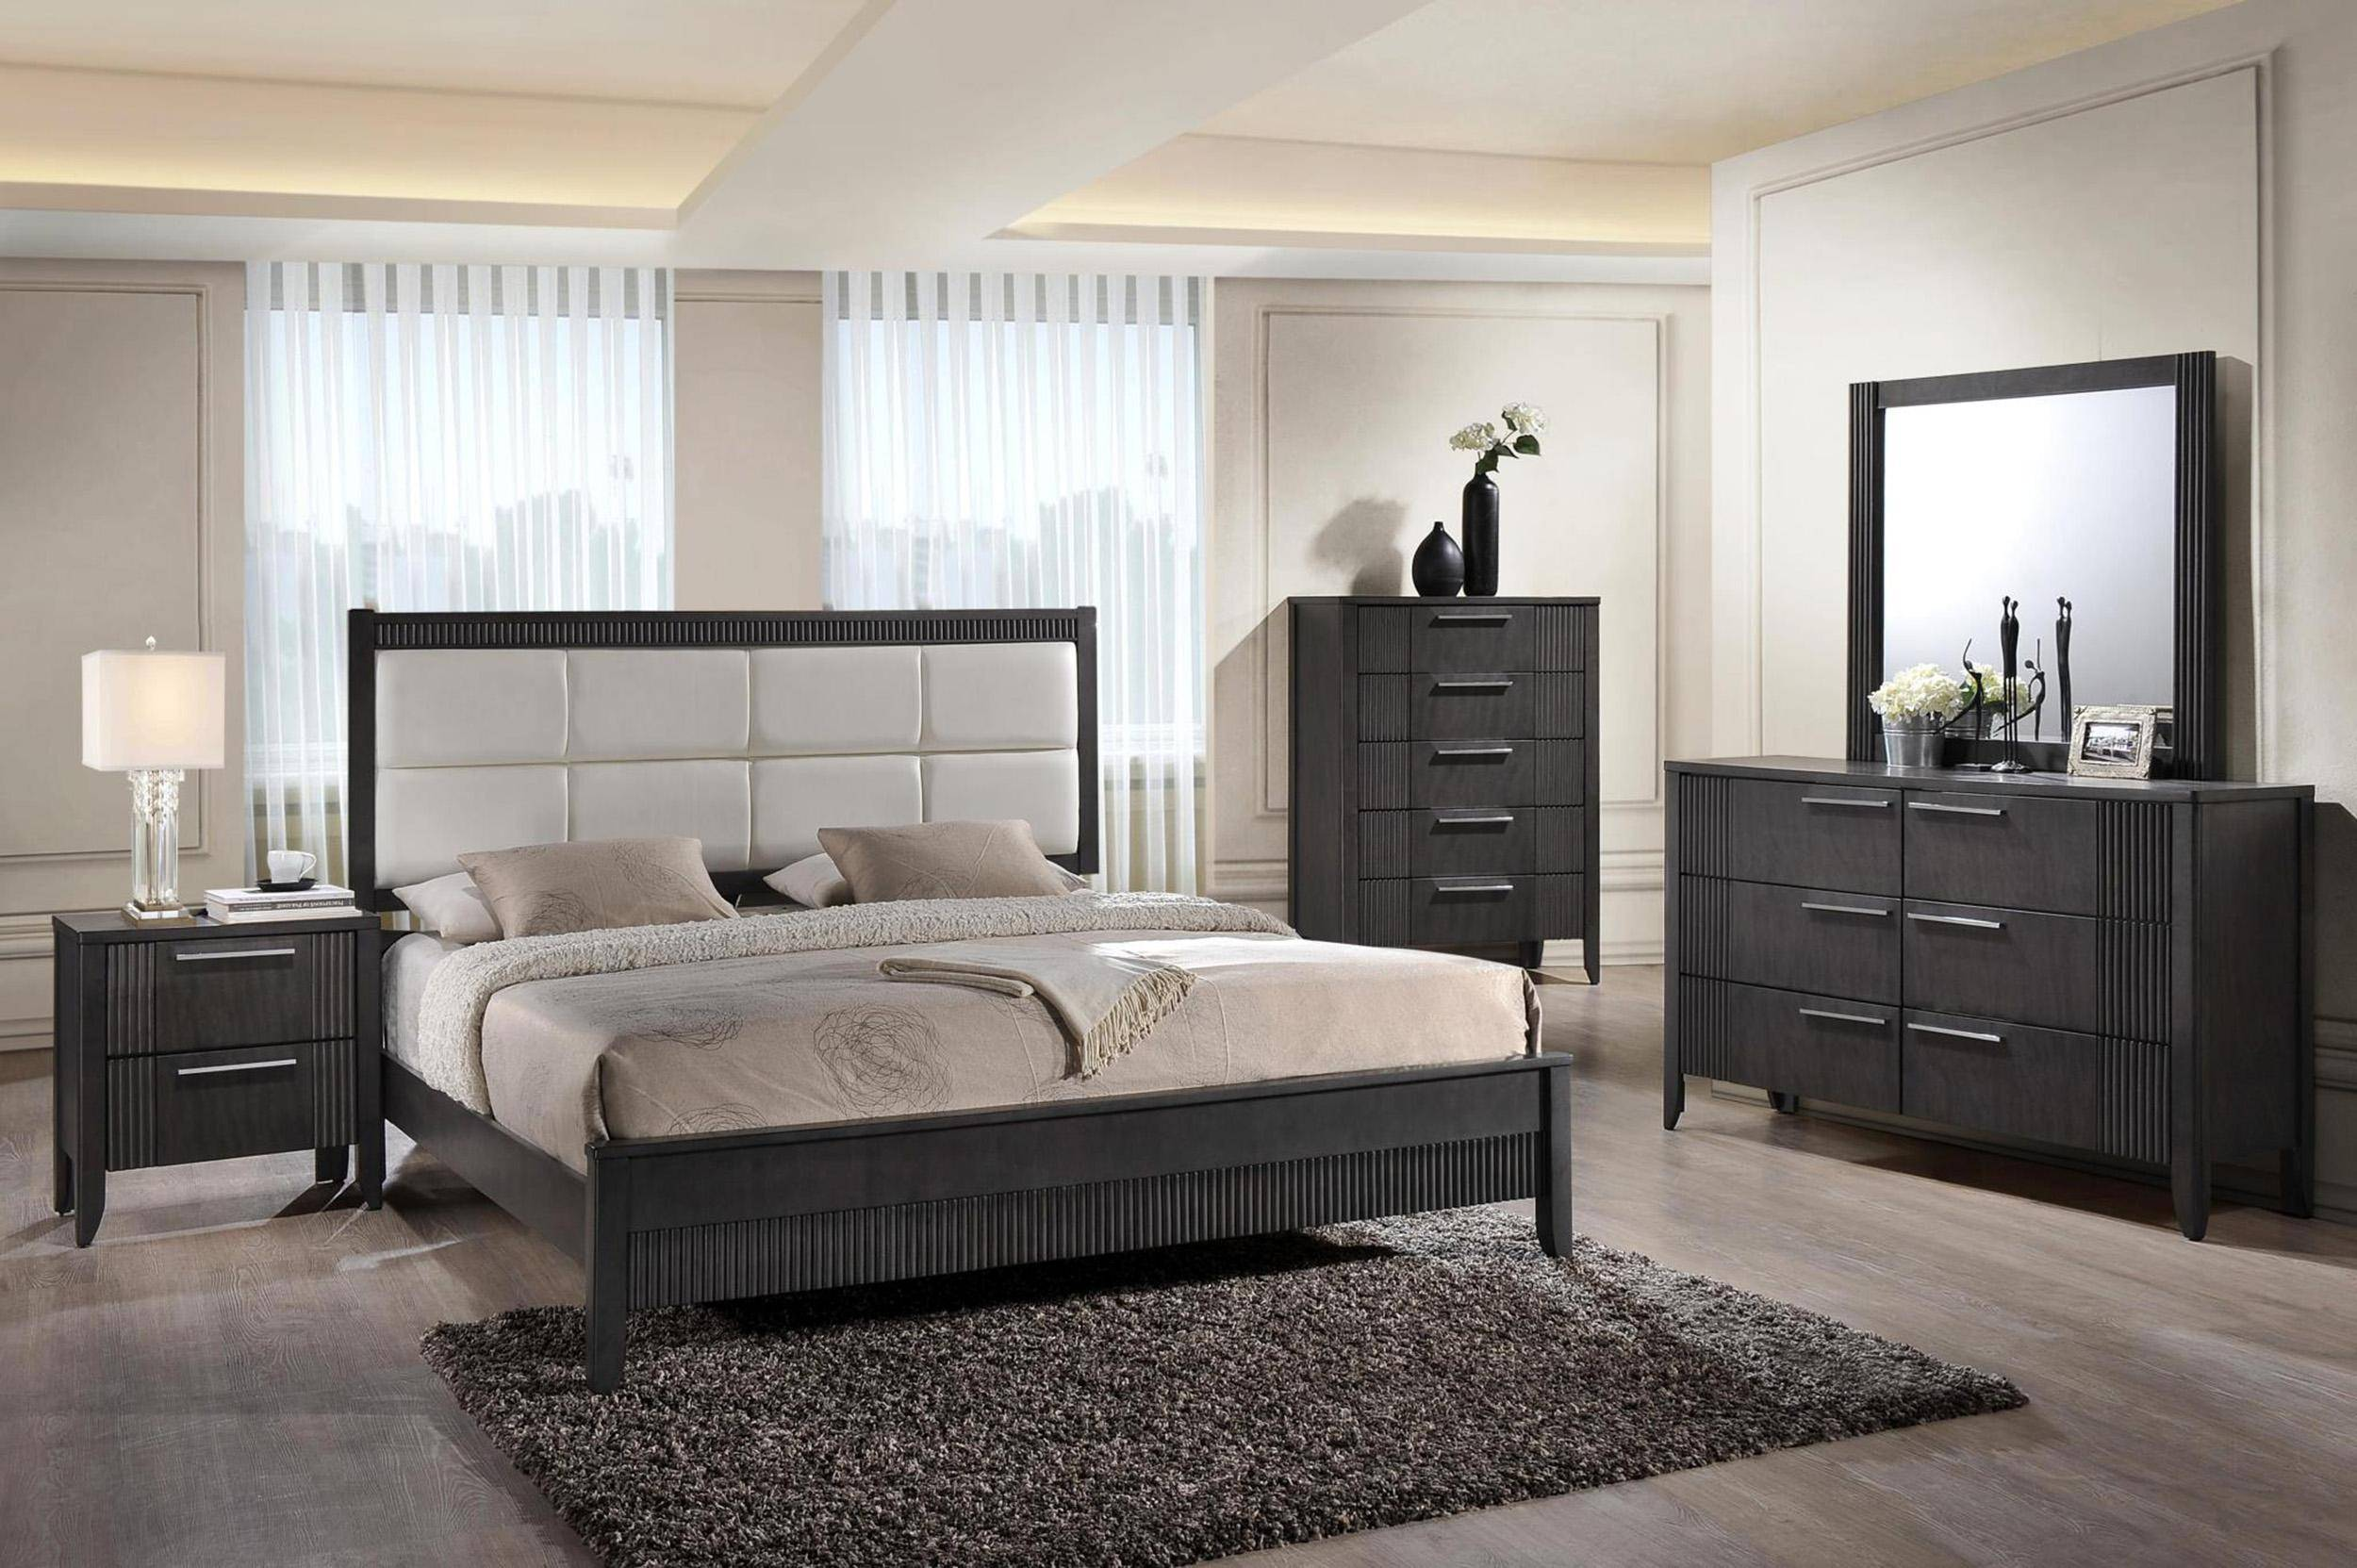 74 Bedroom Set With Soft Headboard Newest